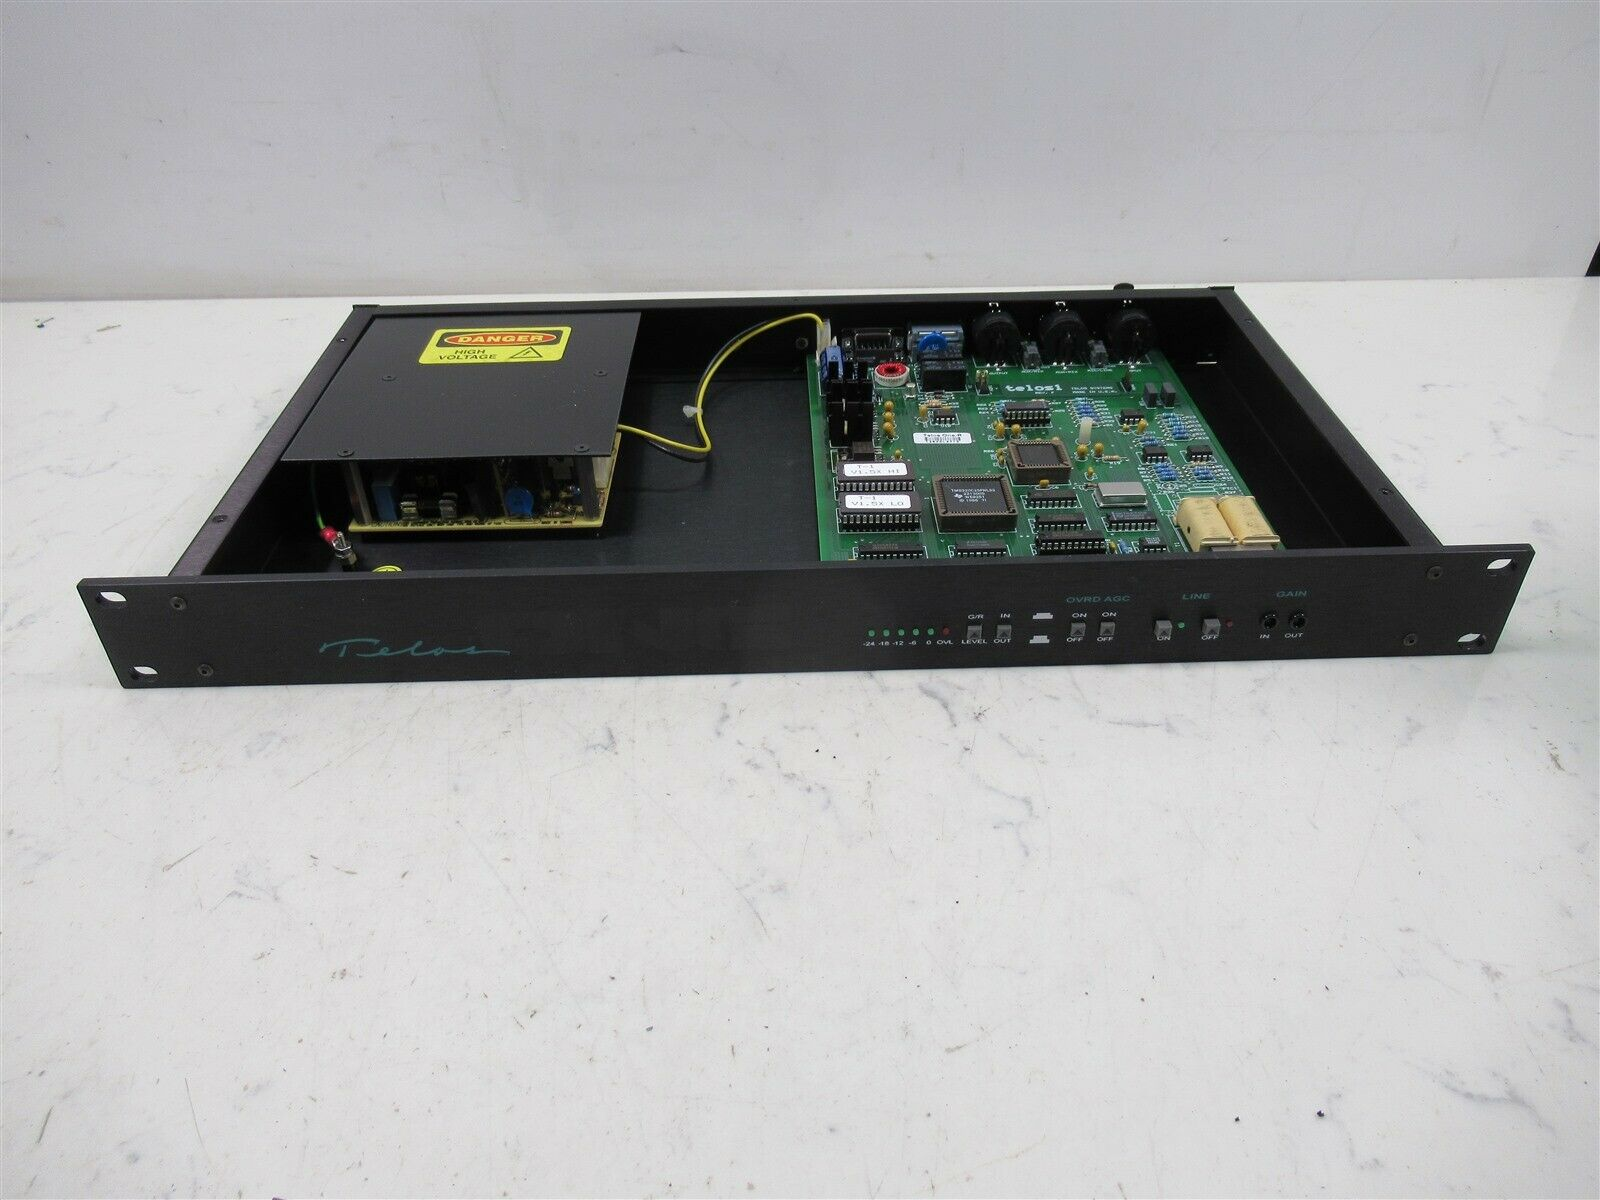 Details about Telos One-R Digital Hybrid Broadcast Telephone Audio  Interface Rack Mount Deck